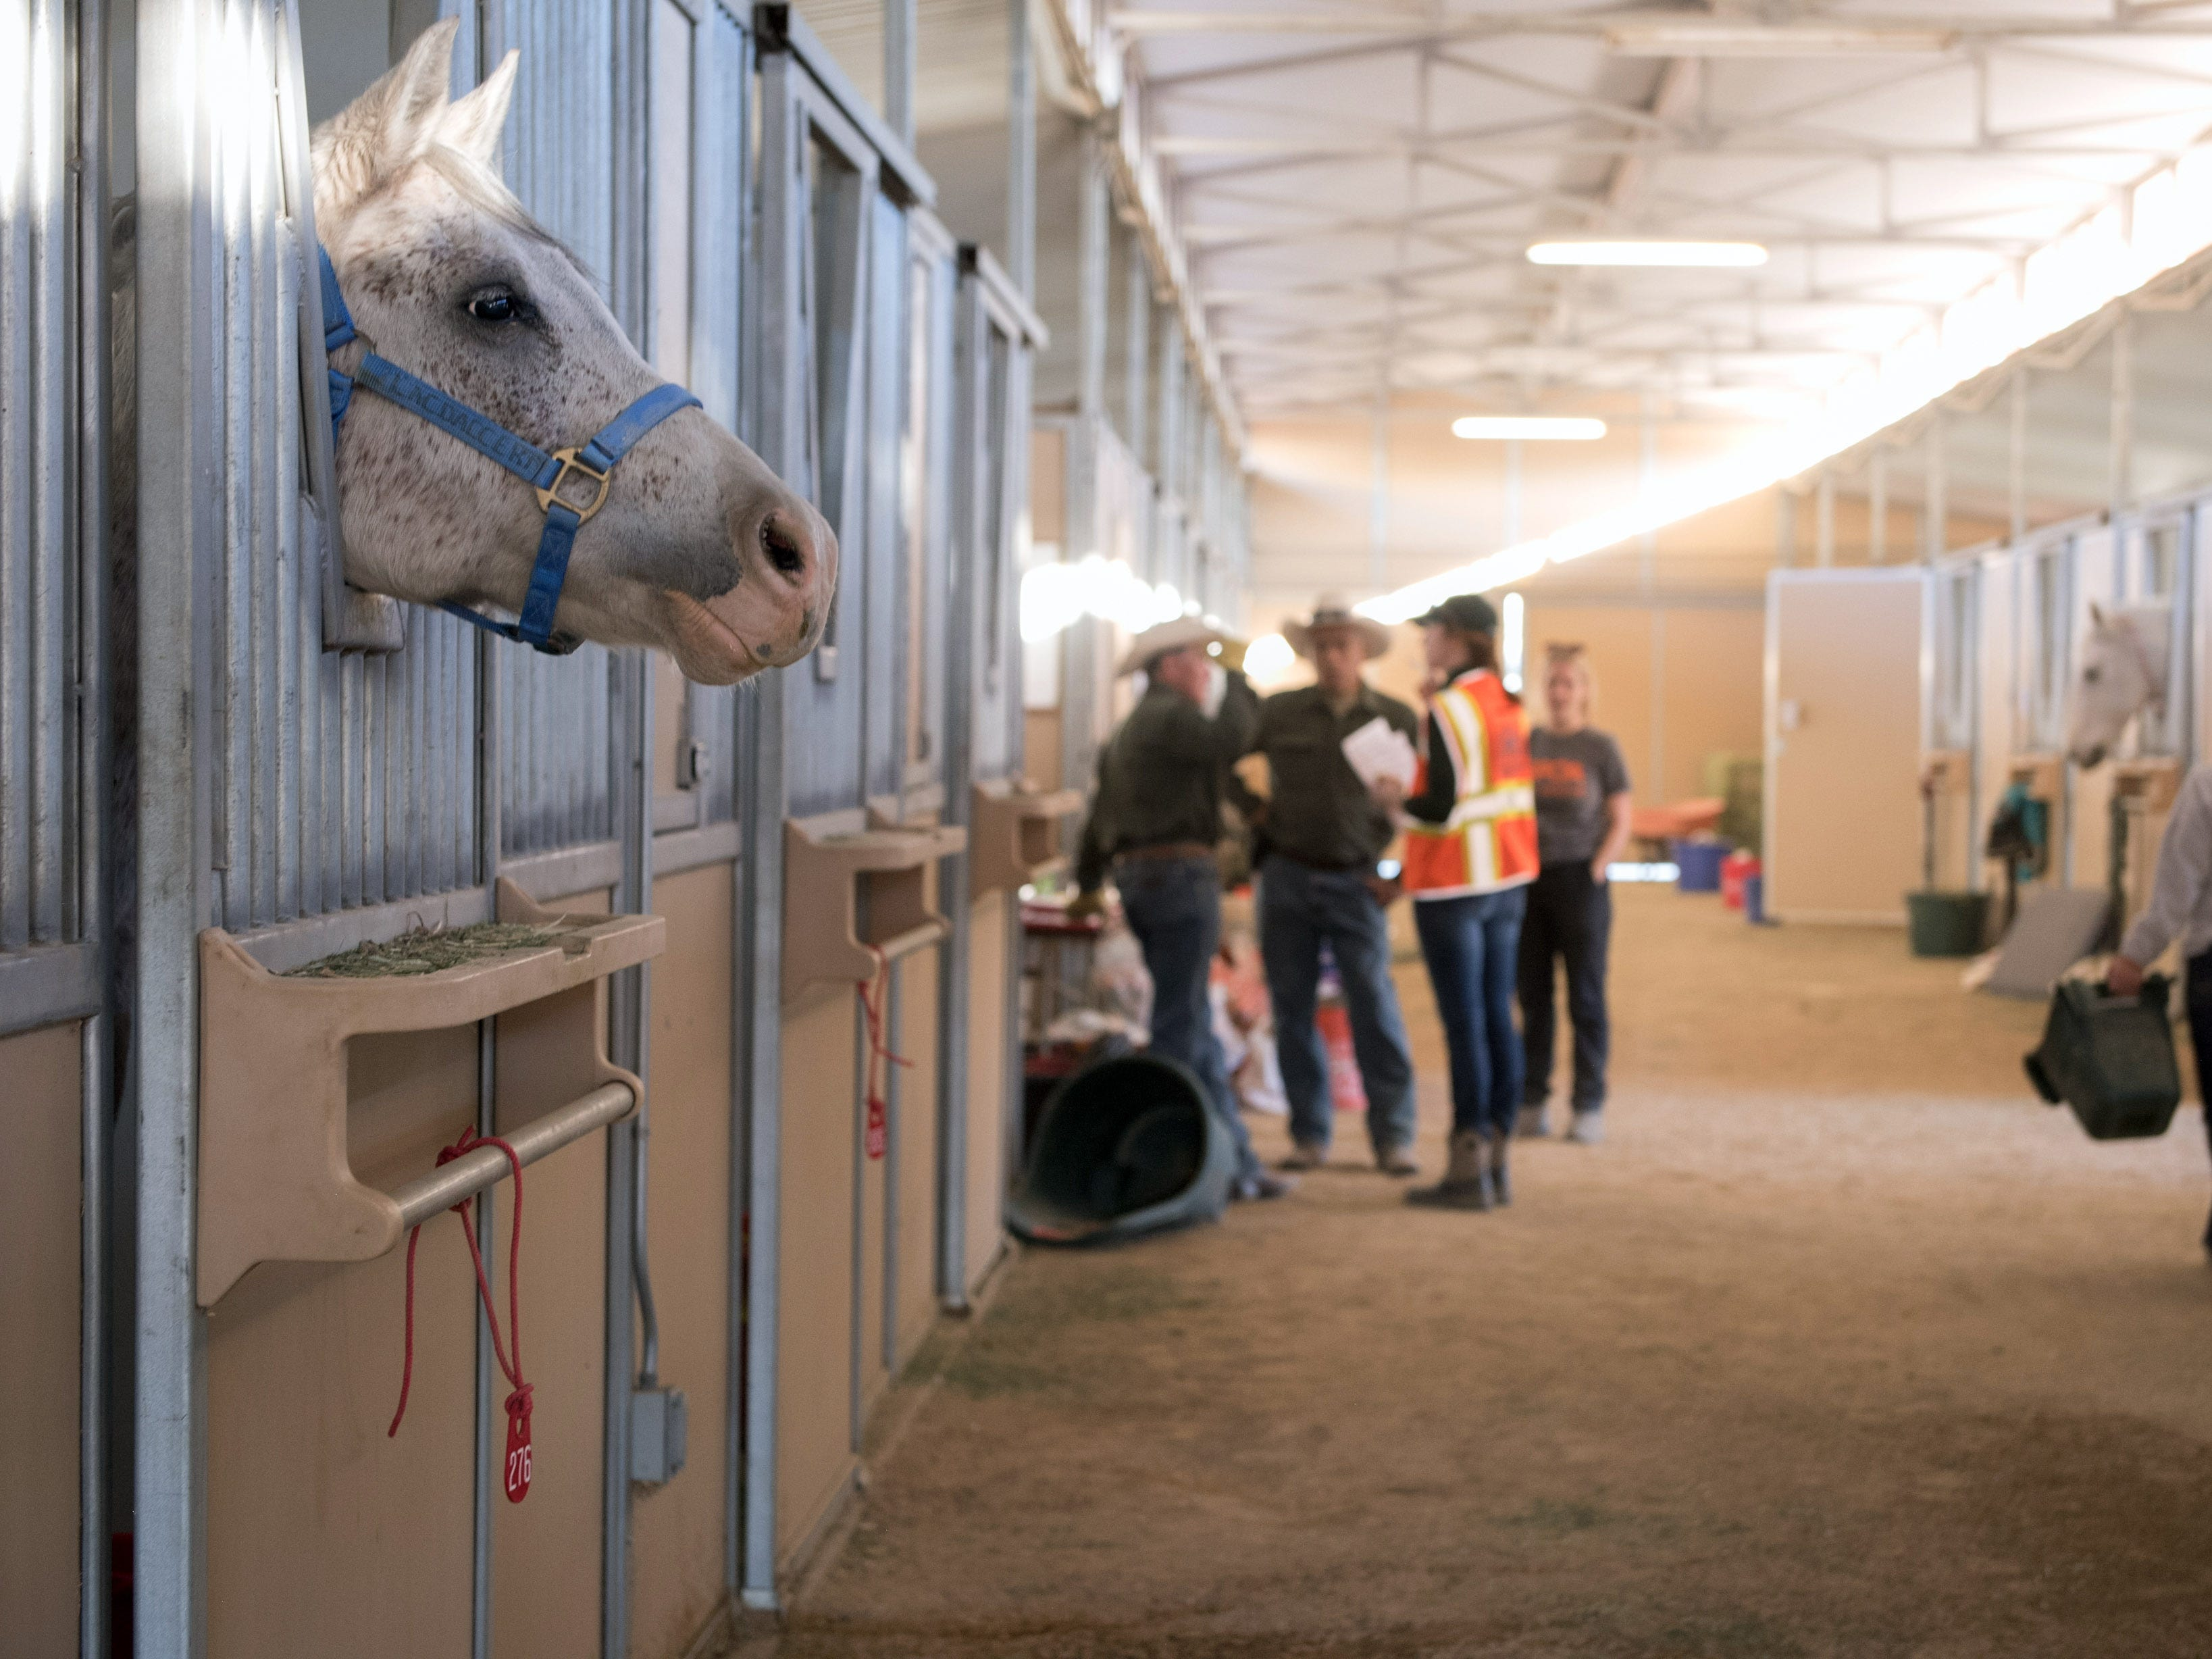 Horses displaced by the Woolsey Fire are kept in stalls on the campus of Pierce College in Woodland Hills, Calif. on Nov. 12, 2018.